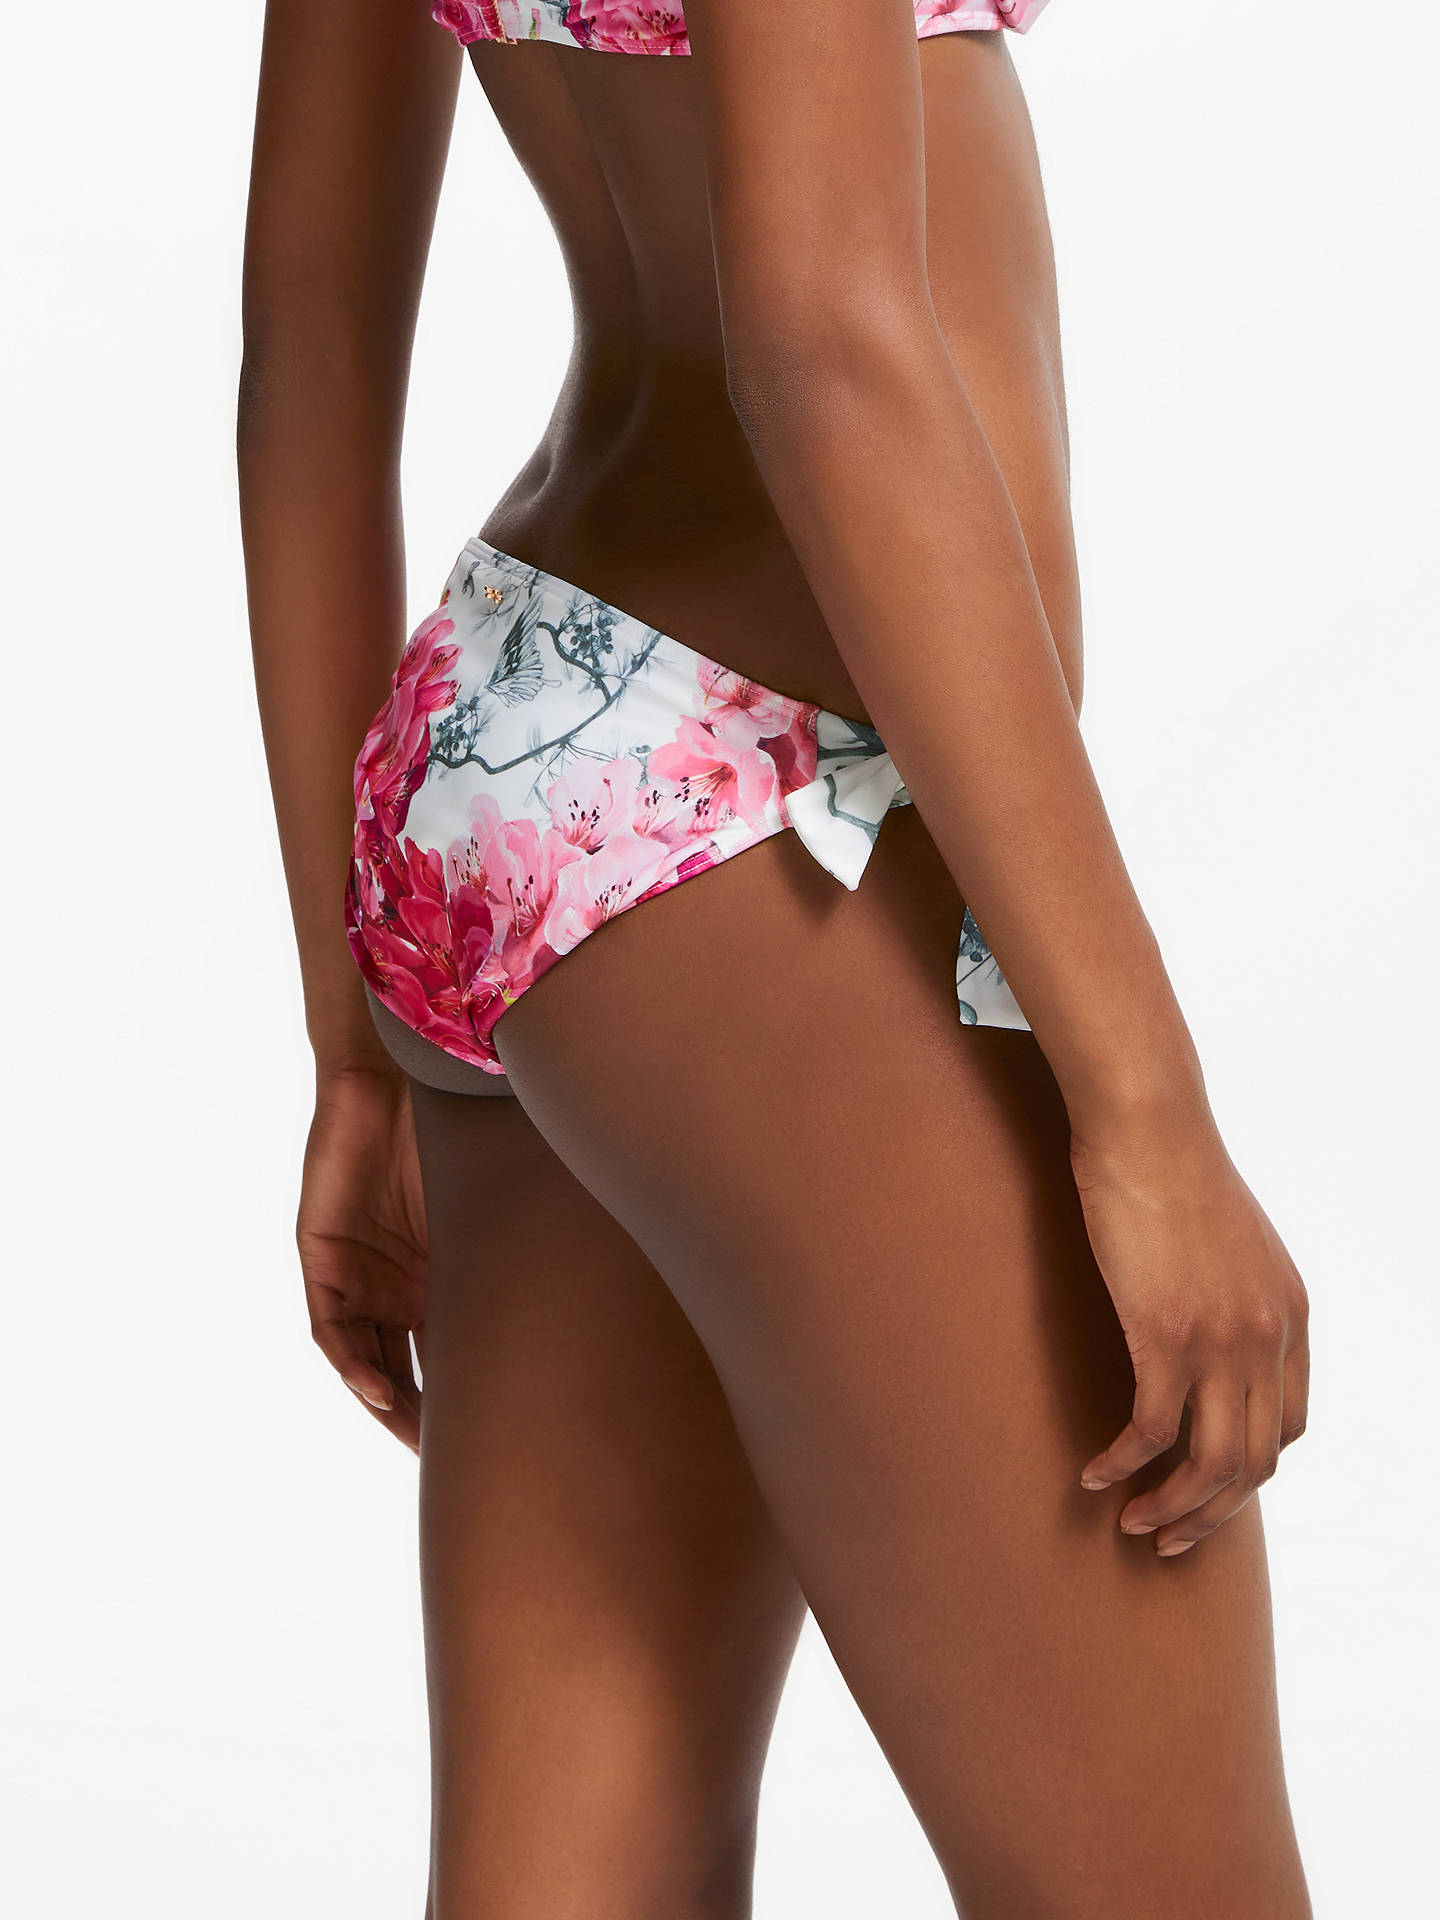 BuyTed Baker Fardet Babylon Print Tie Side Bikini Bottoms, White/Pink, 1 Online at johnlewis.com